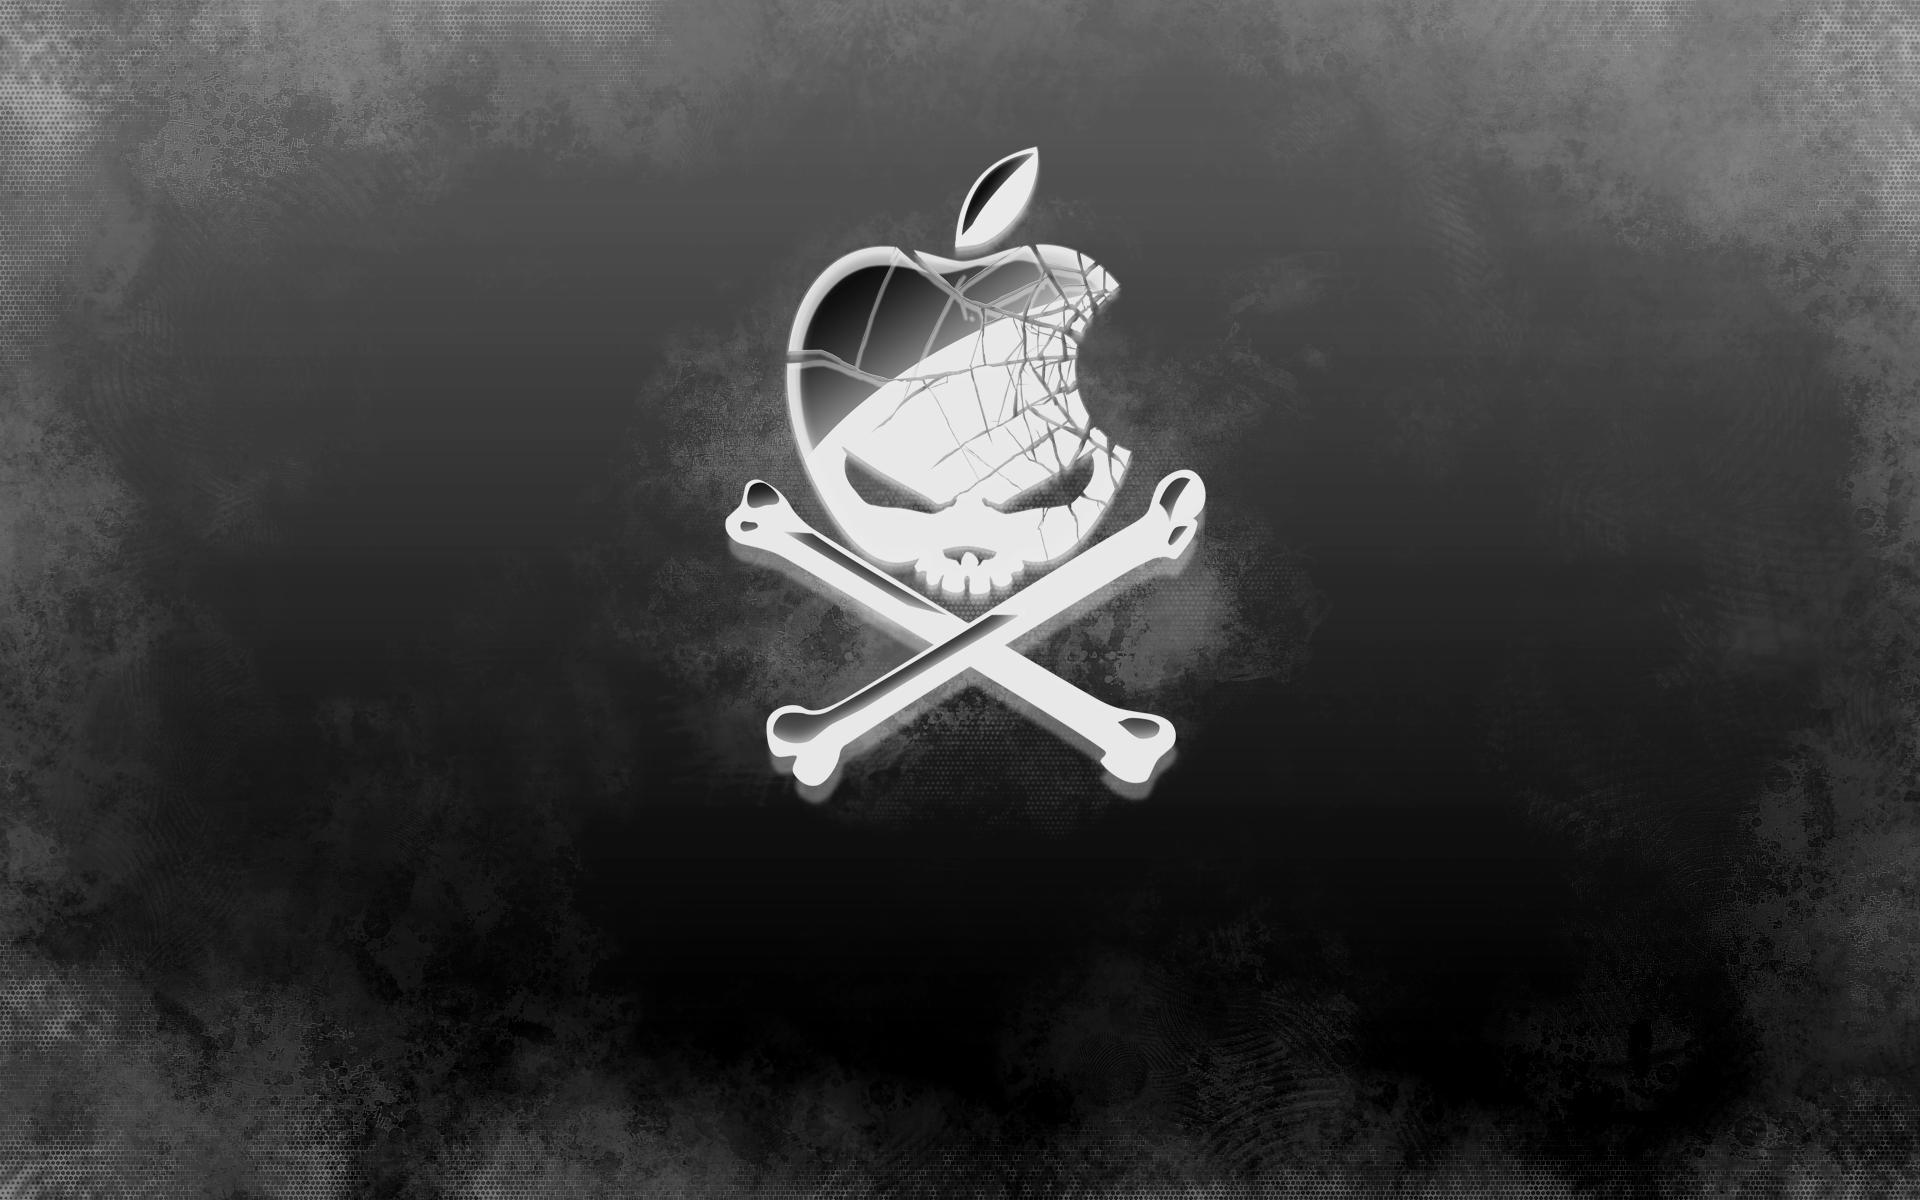 Apple Skull Logo Download Cool Silver Skull Apple Logo Wallpapers